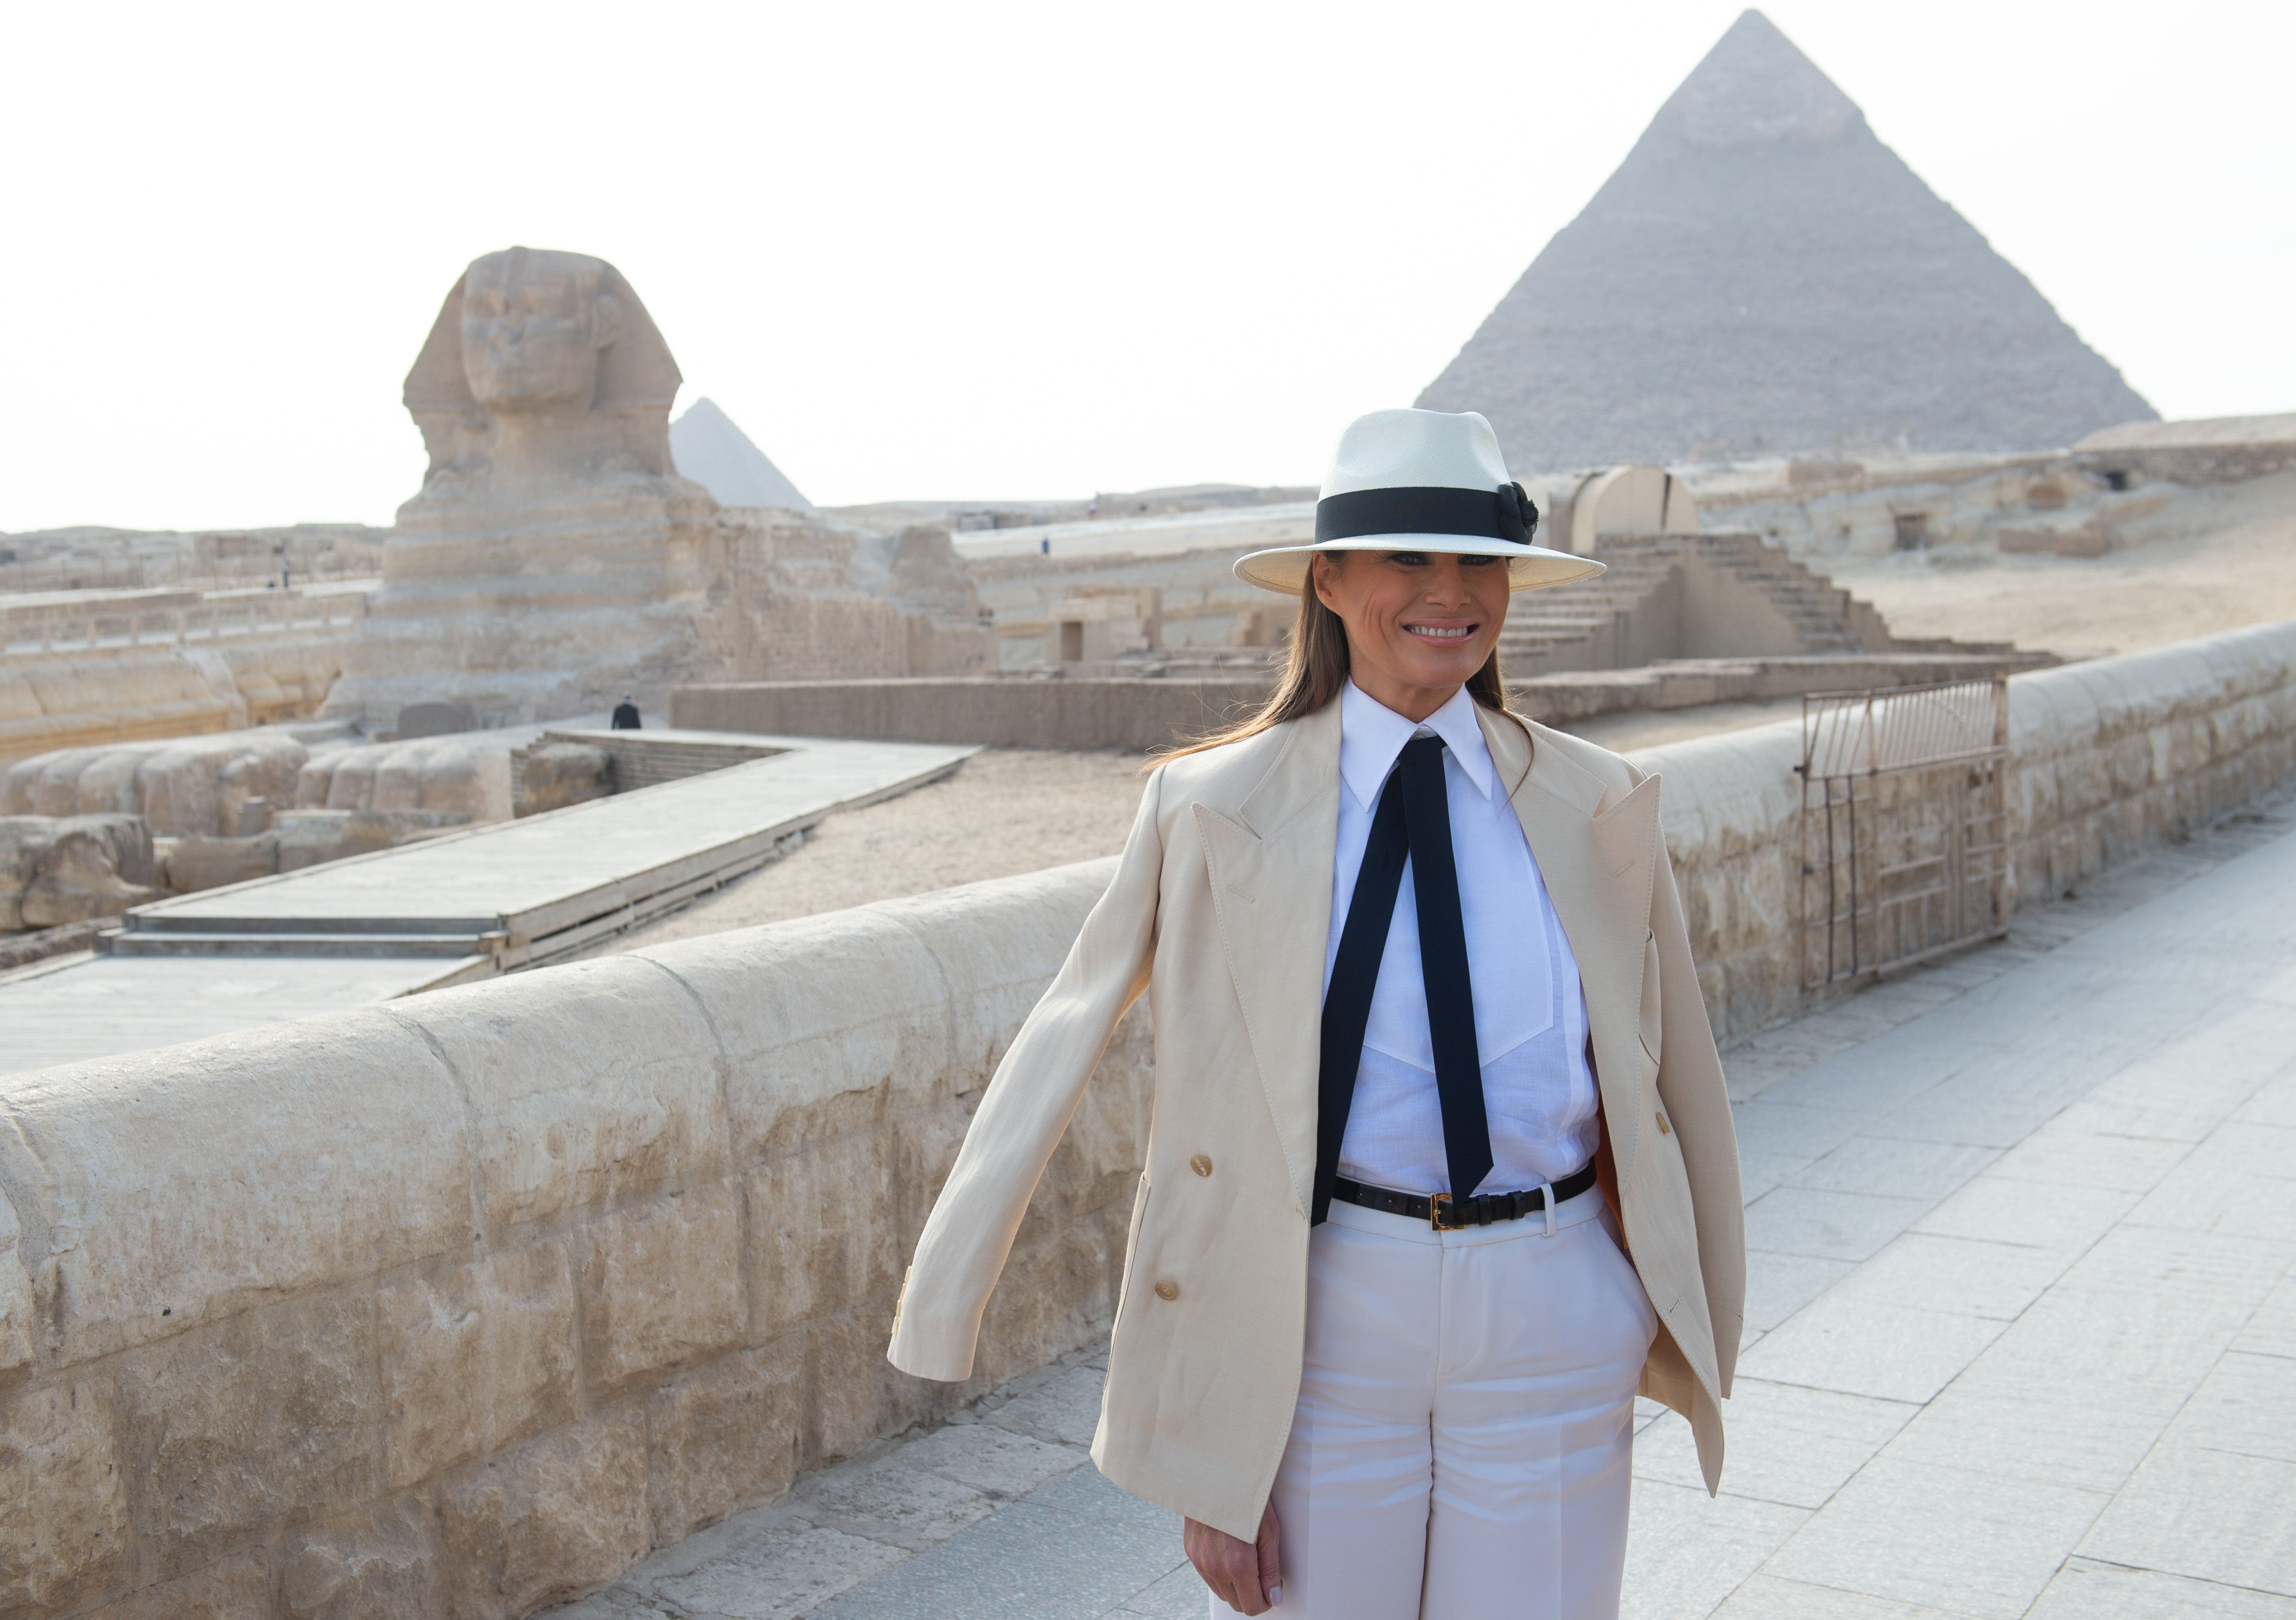 Melania Trump dons a tan suit and black tie while touring the Egyptian pyramids